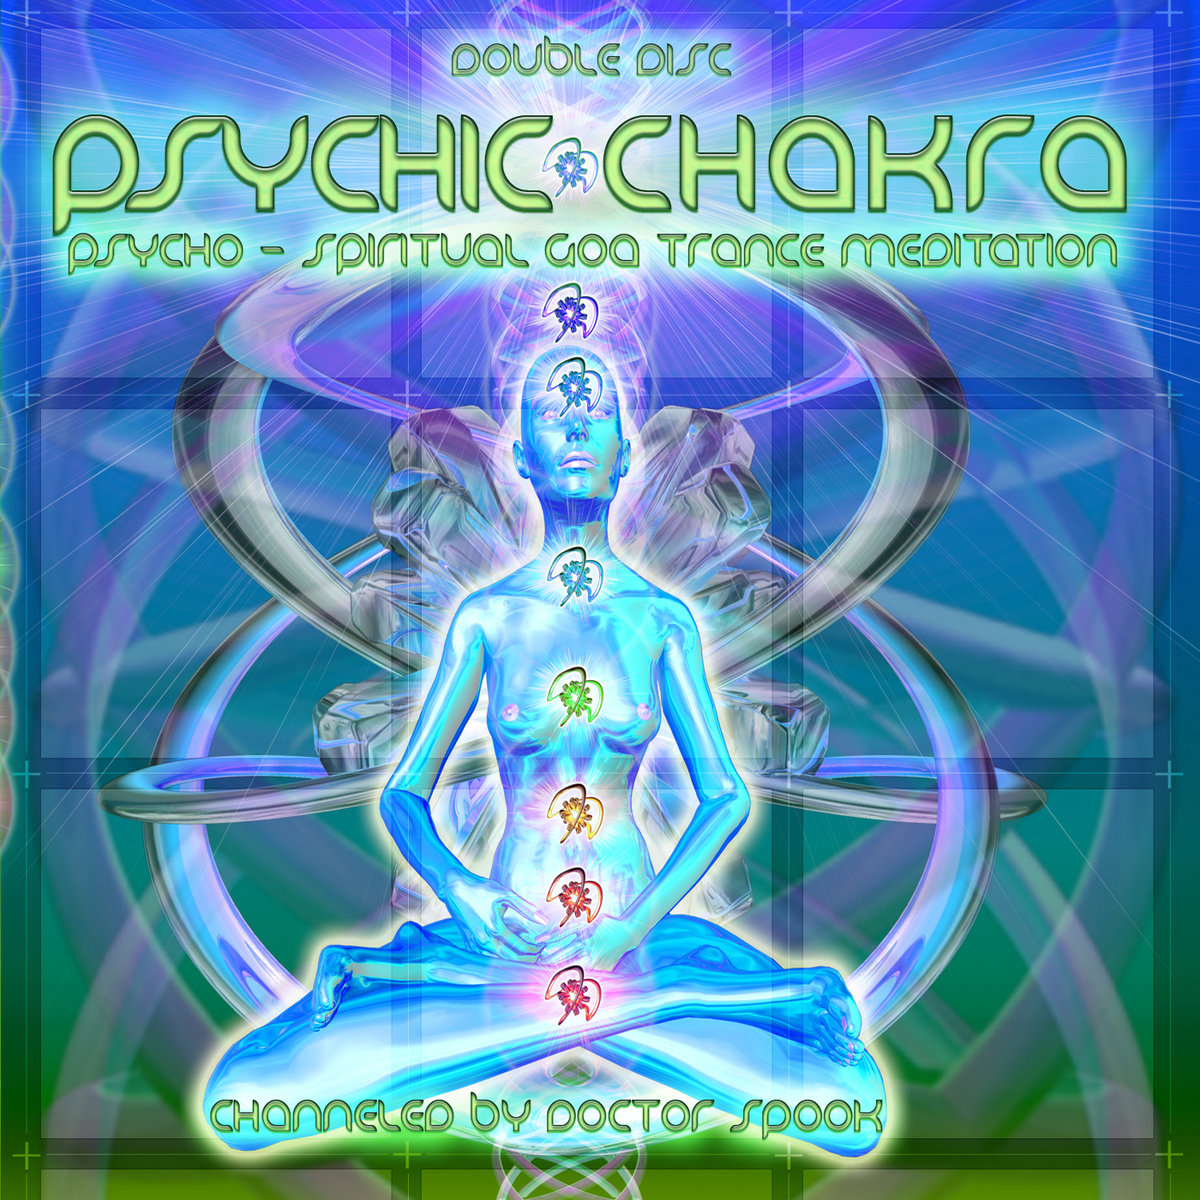 Imix - Wa Hey Guru @ 'Various Artists - Psychic Chakra (Channeled by Dr. Spook)' album (electronic, psychic chakra)